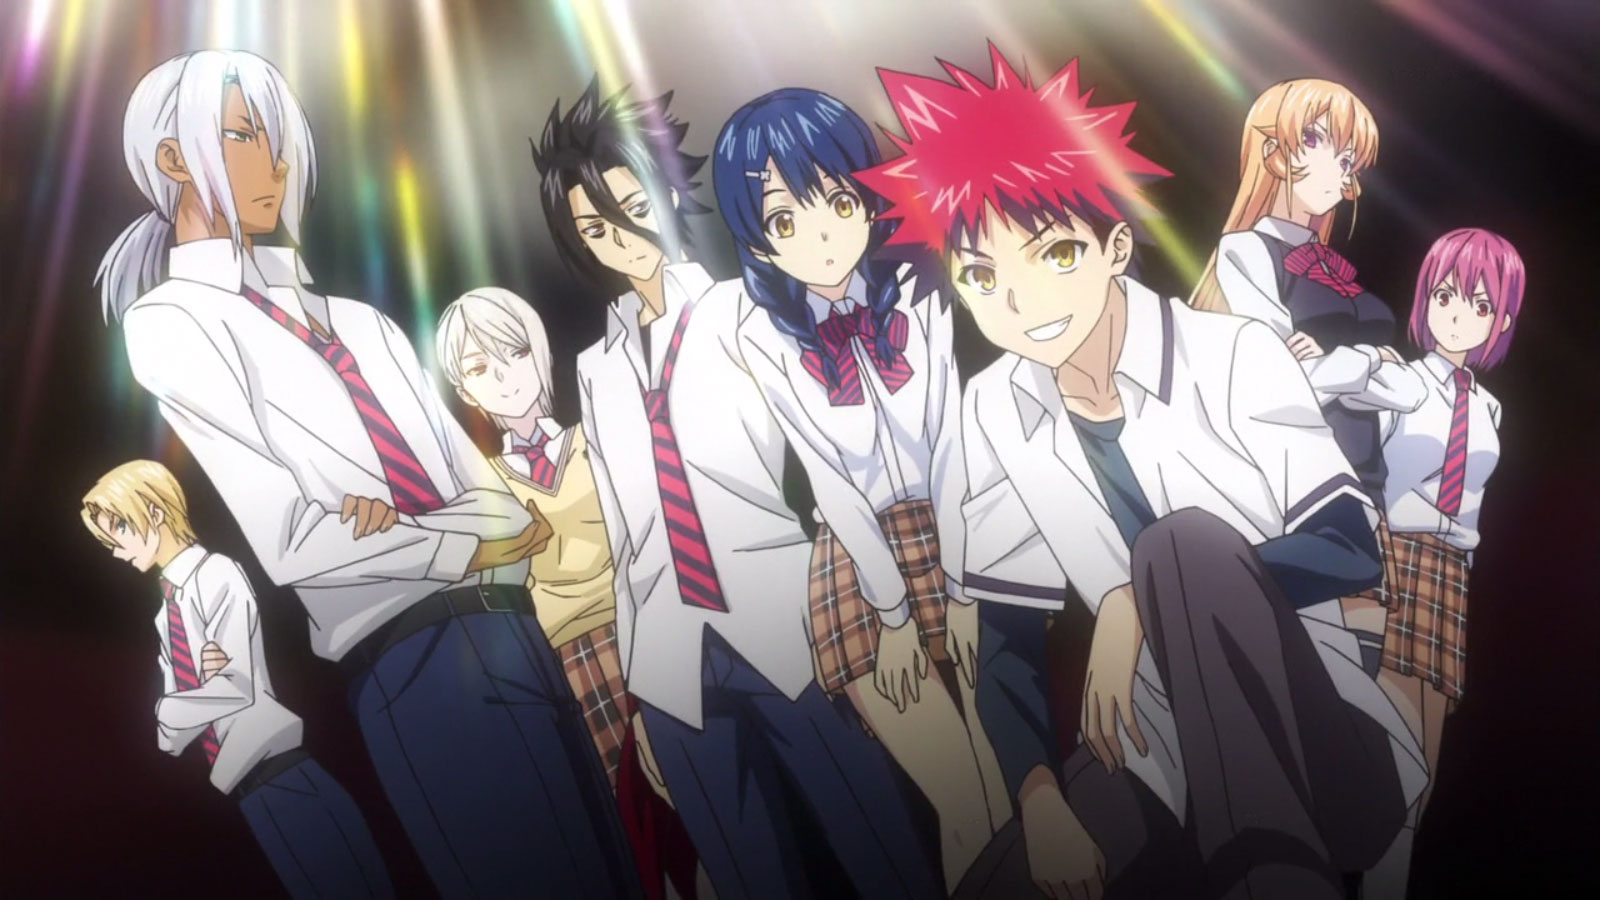 Food Wars: Meeting the new Elite 10 Council of Totsuki ...